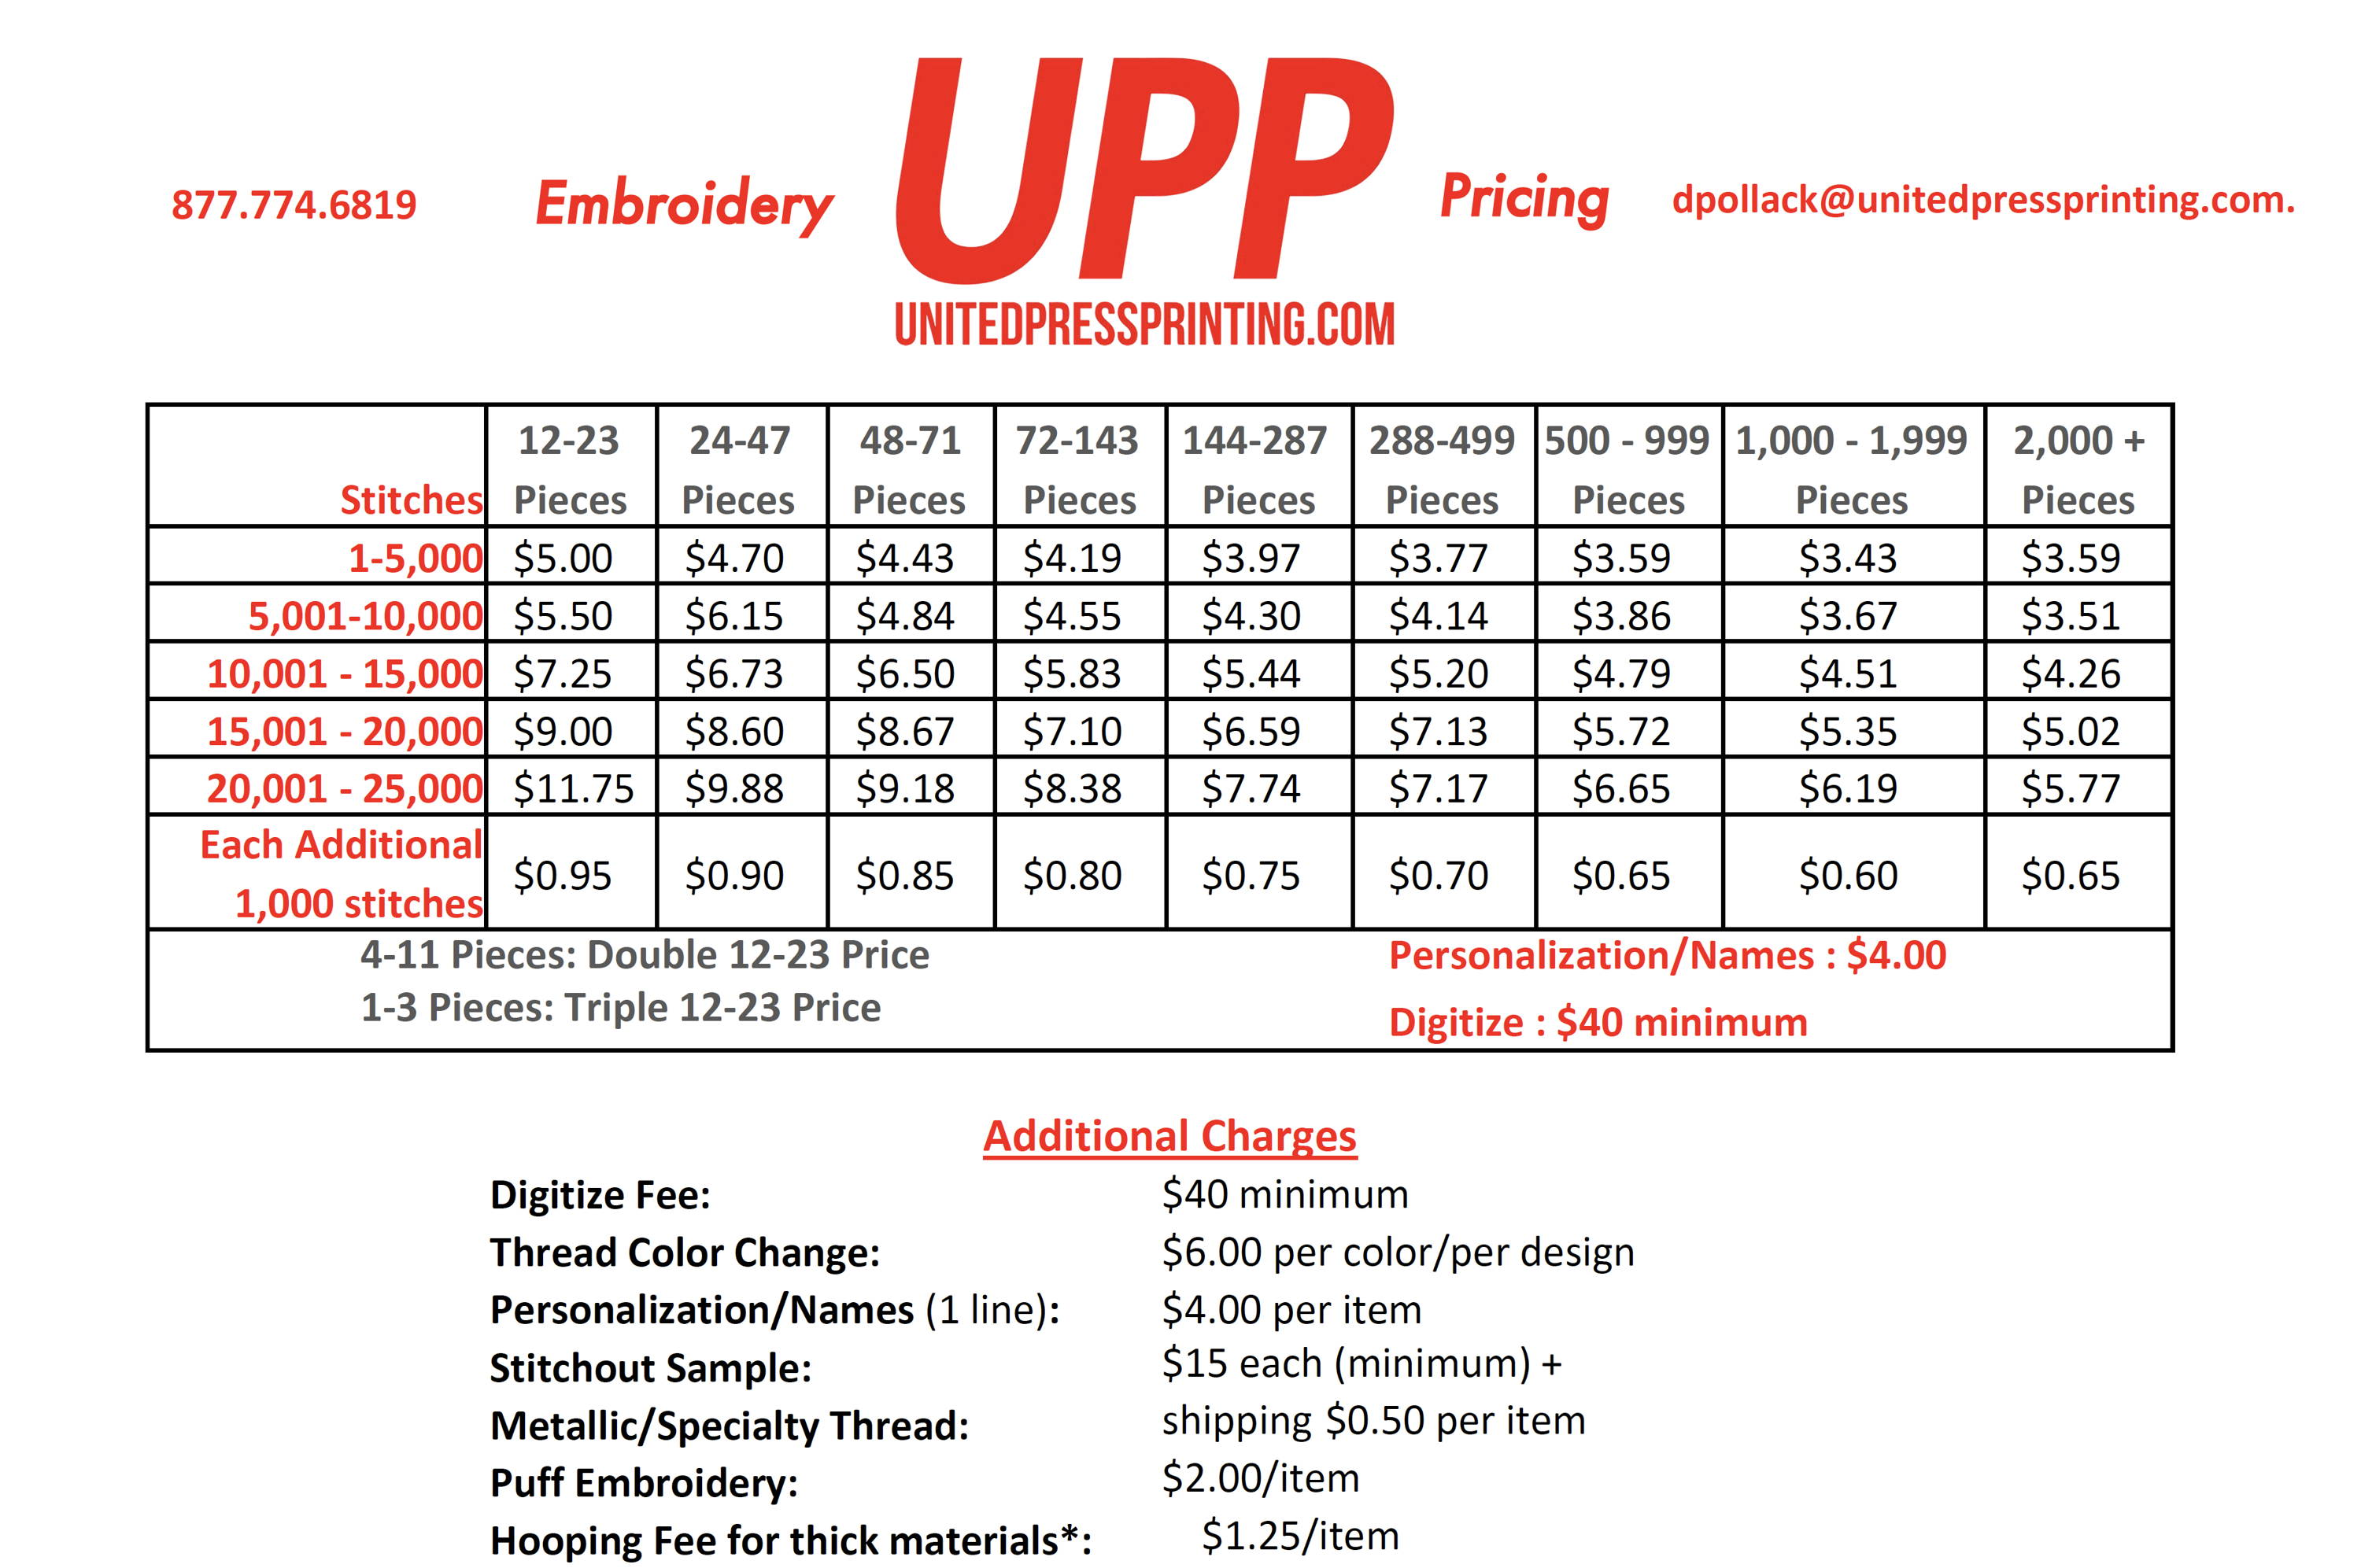 Dtg Digital Printing Screen Printing Embroidery Pricing United